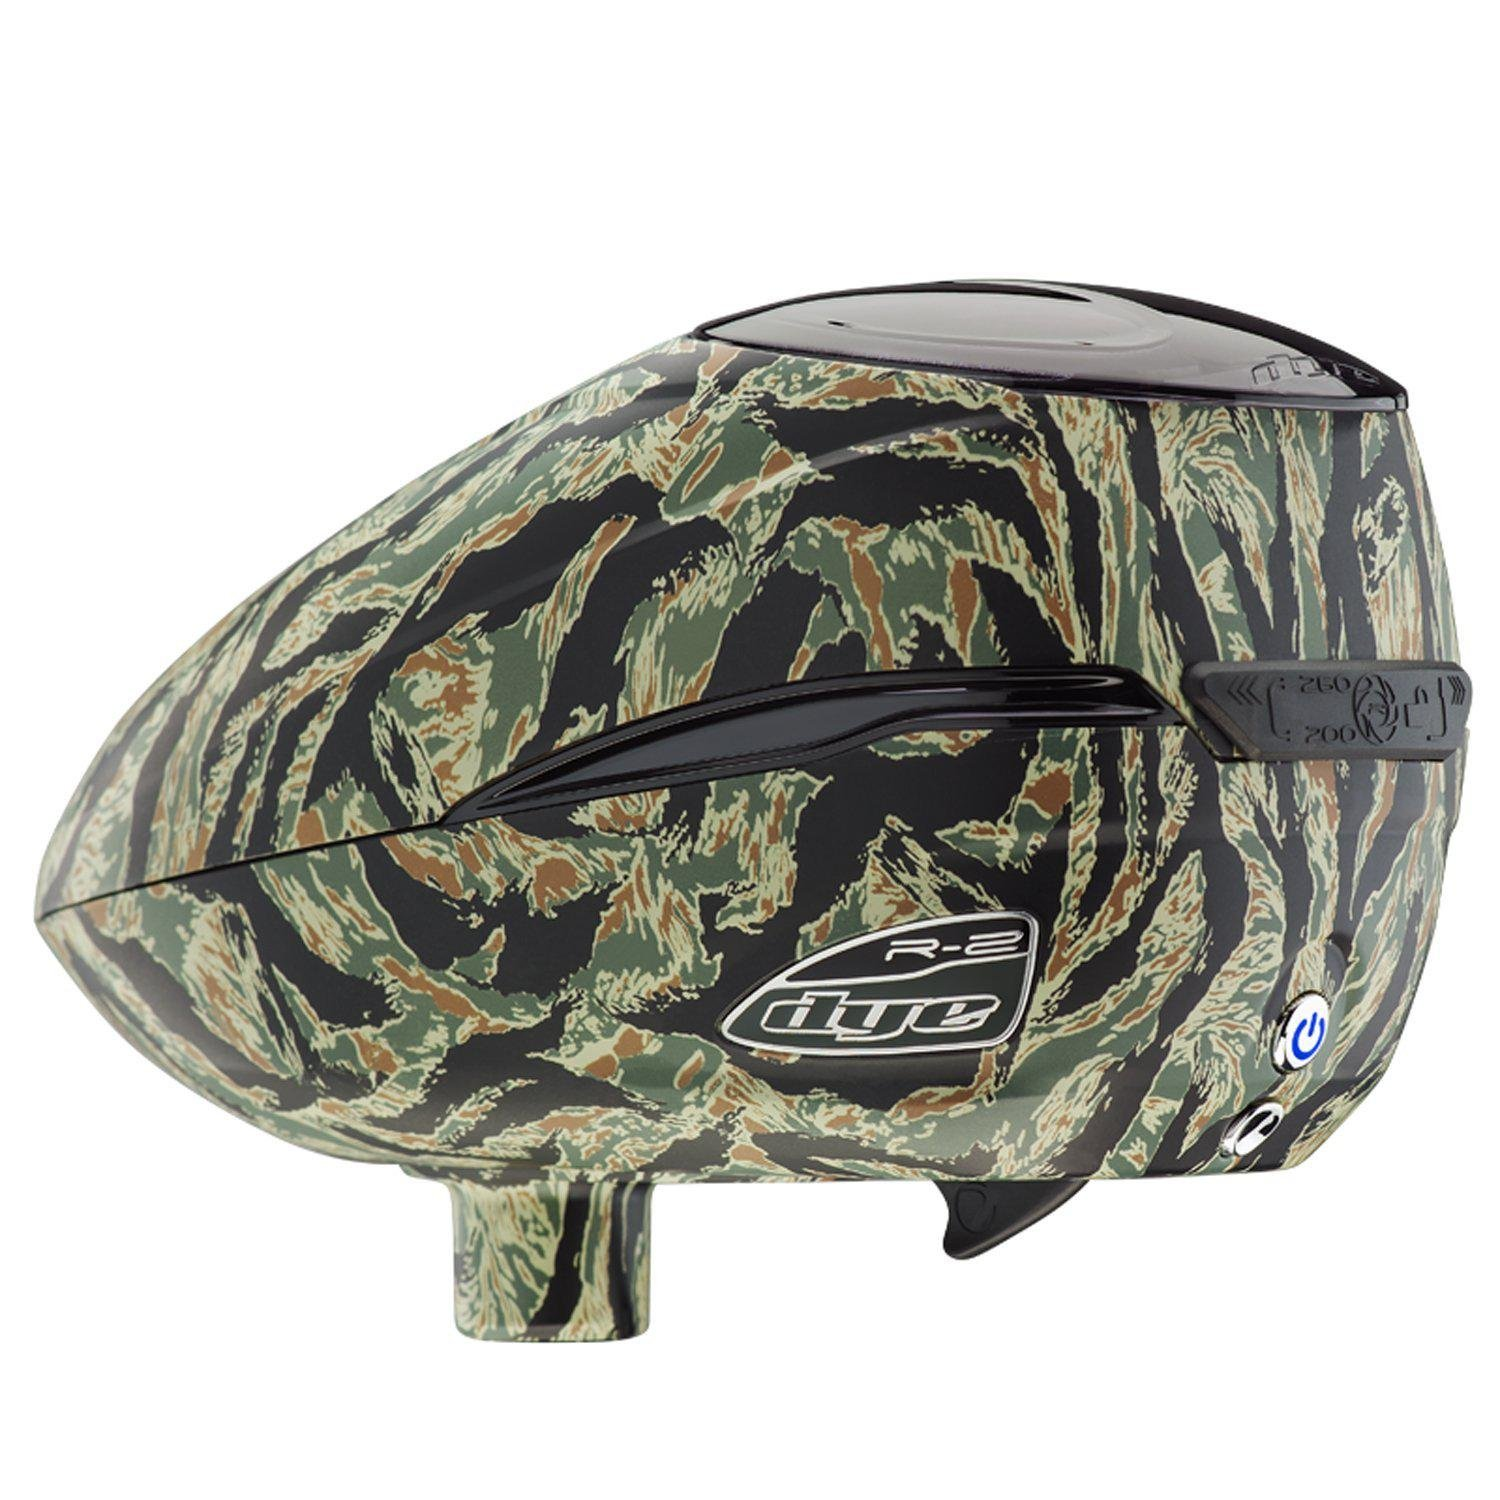 Dye R2 Electronic Paintball Loader (Tiger) by Dye